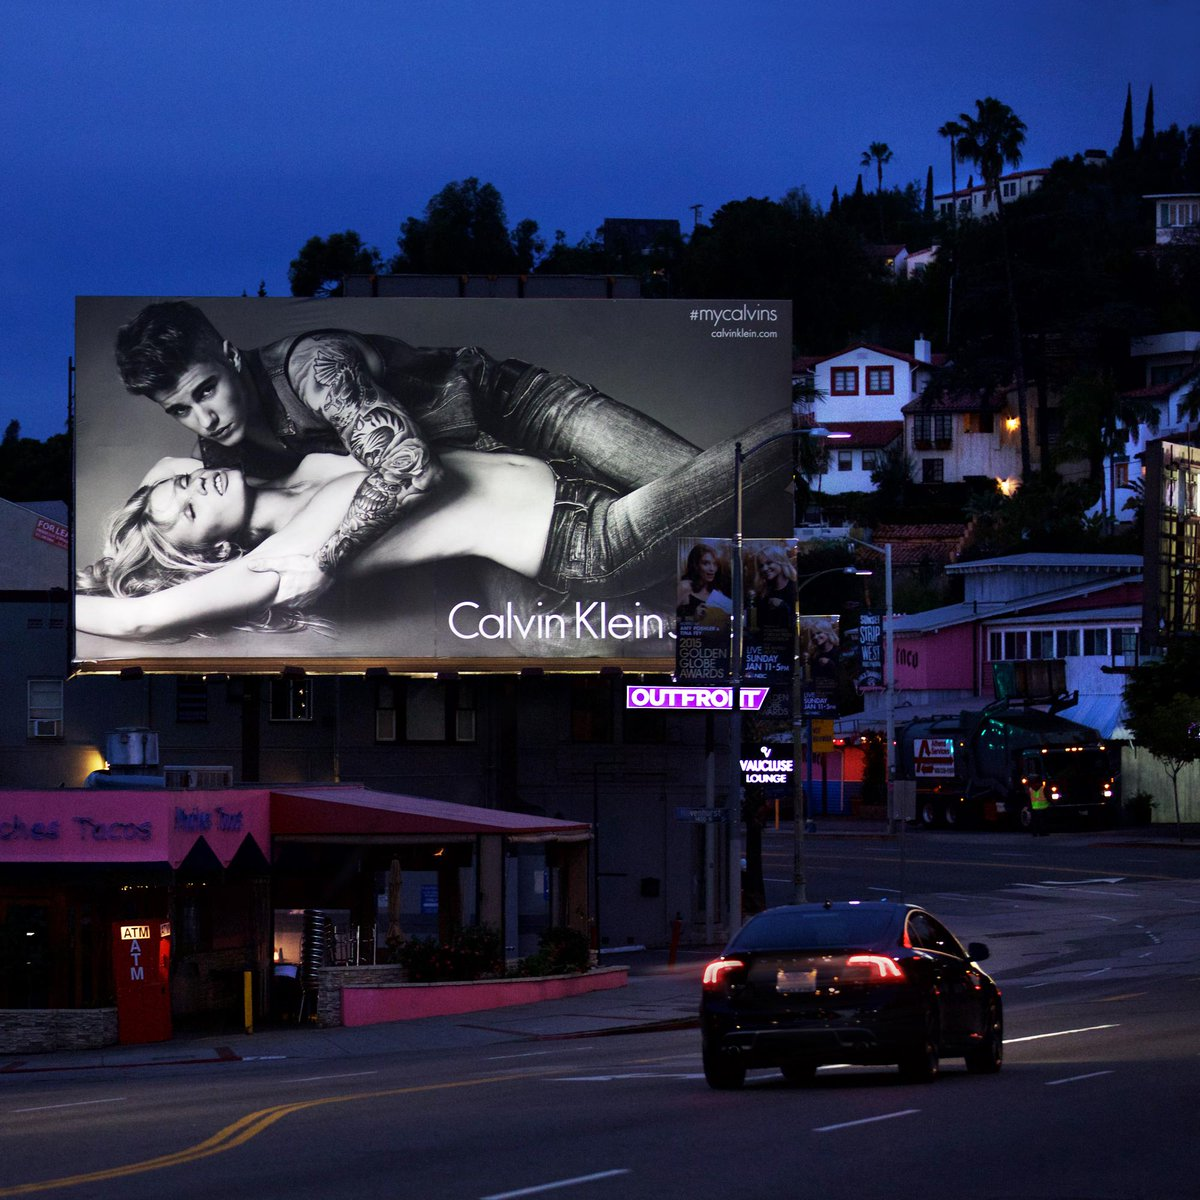 Sunset Blvd after dark. Spring 2015 Calvin Klein Jeans, featuring @justinbieber + @LaraStone. #mycalvins http://t.co/9VlBCf0RoL